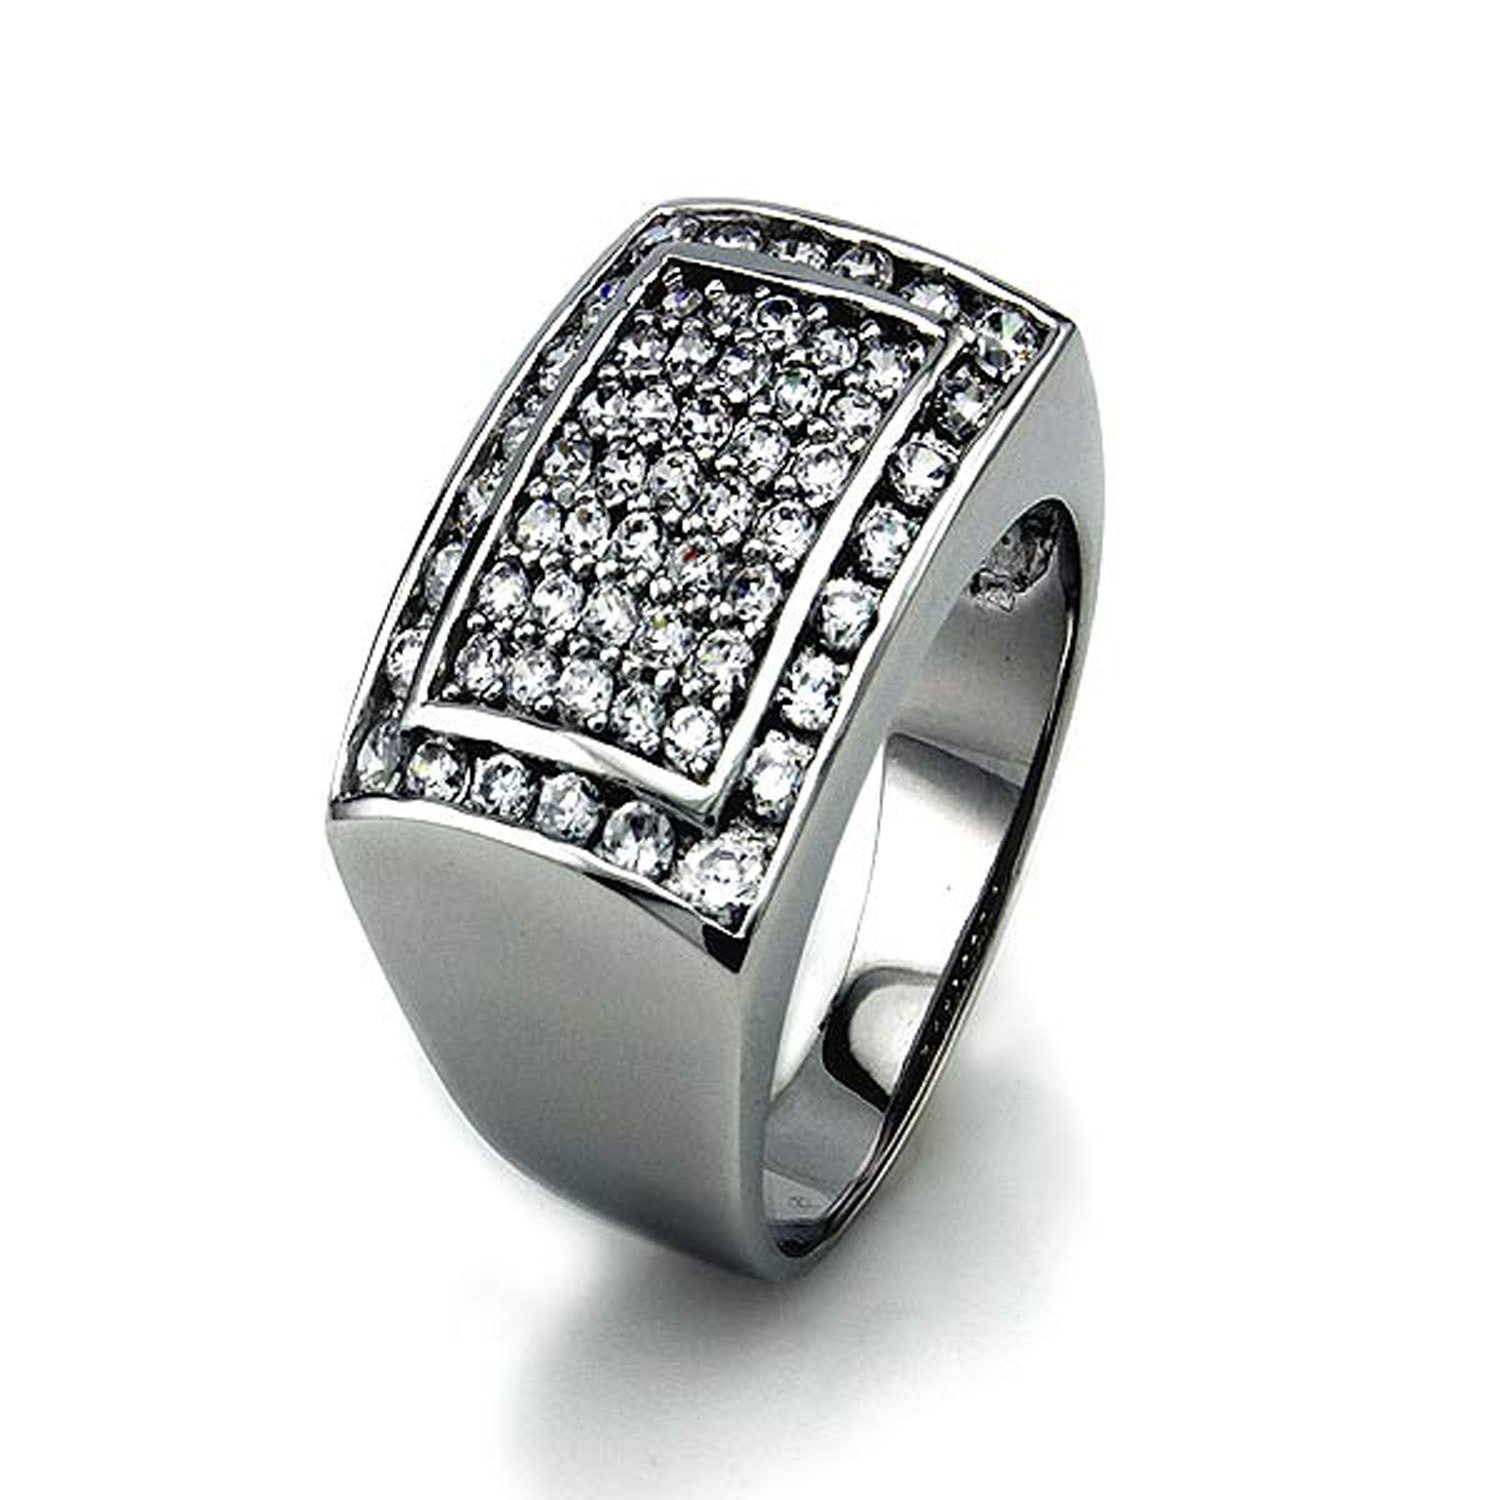 Sterling Silver Pave-set Cubic Zirconia Bulky Men's Ring Tioneer R50002